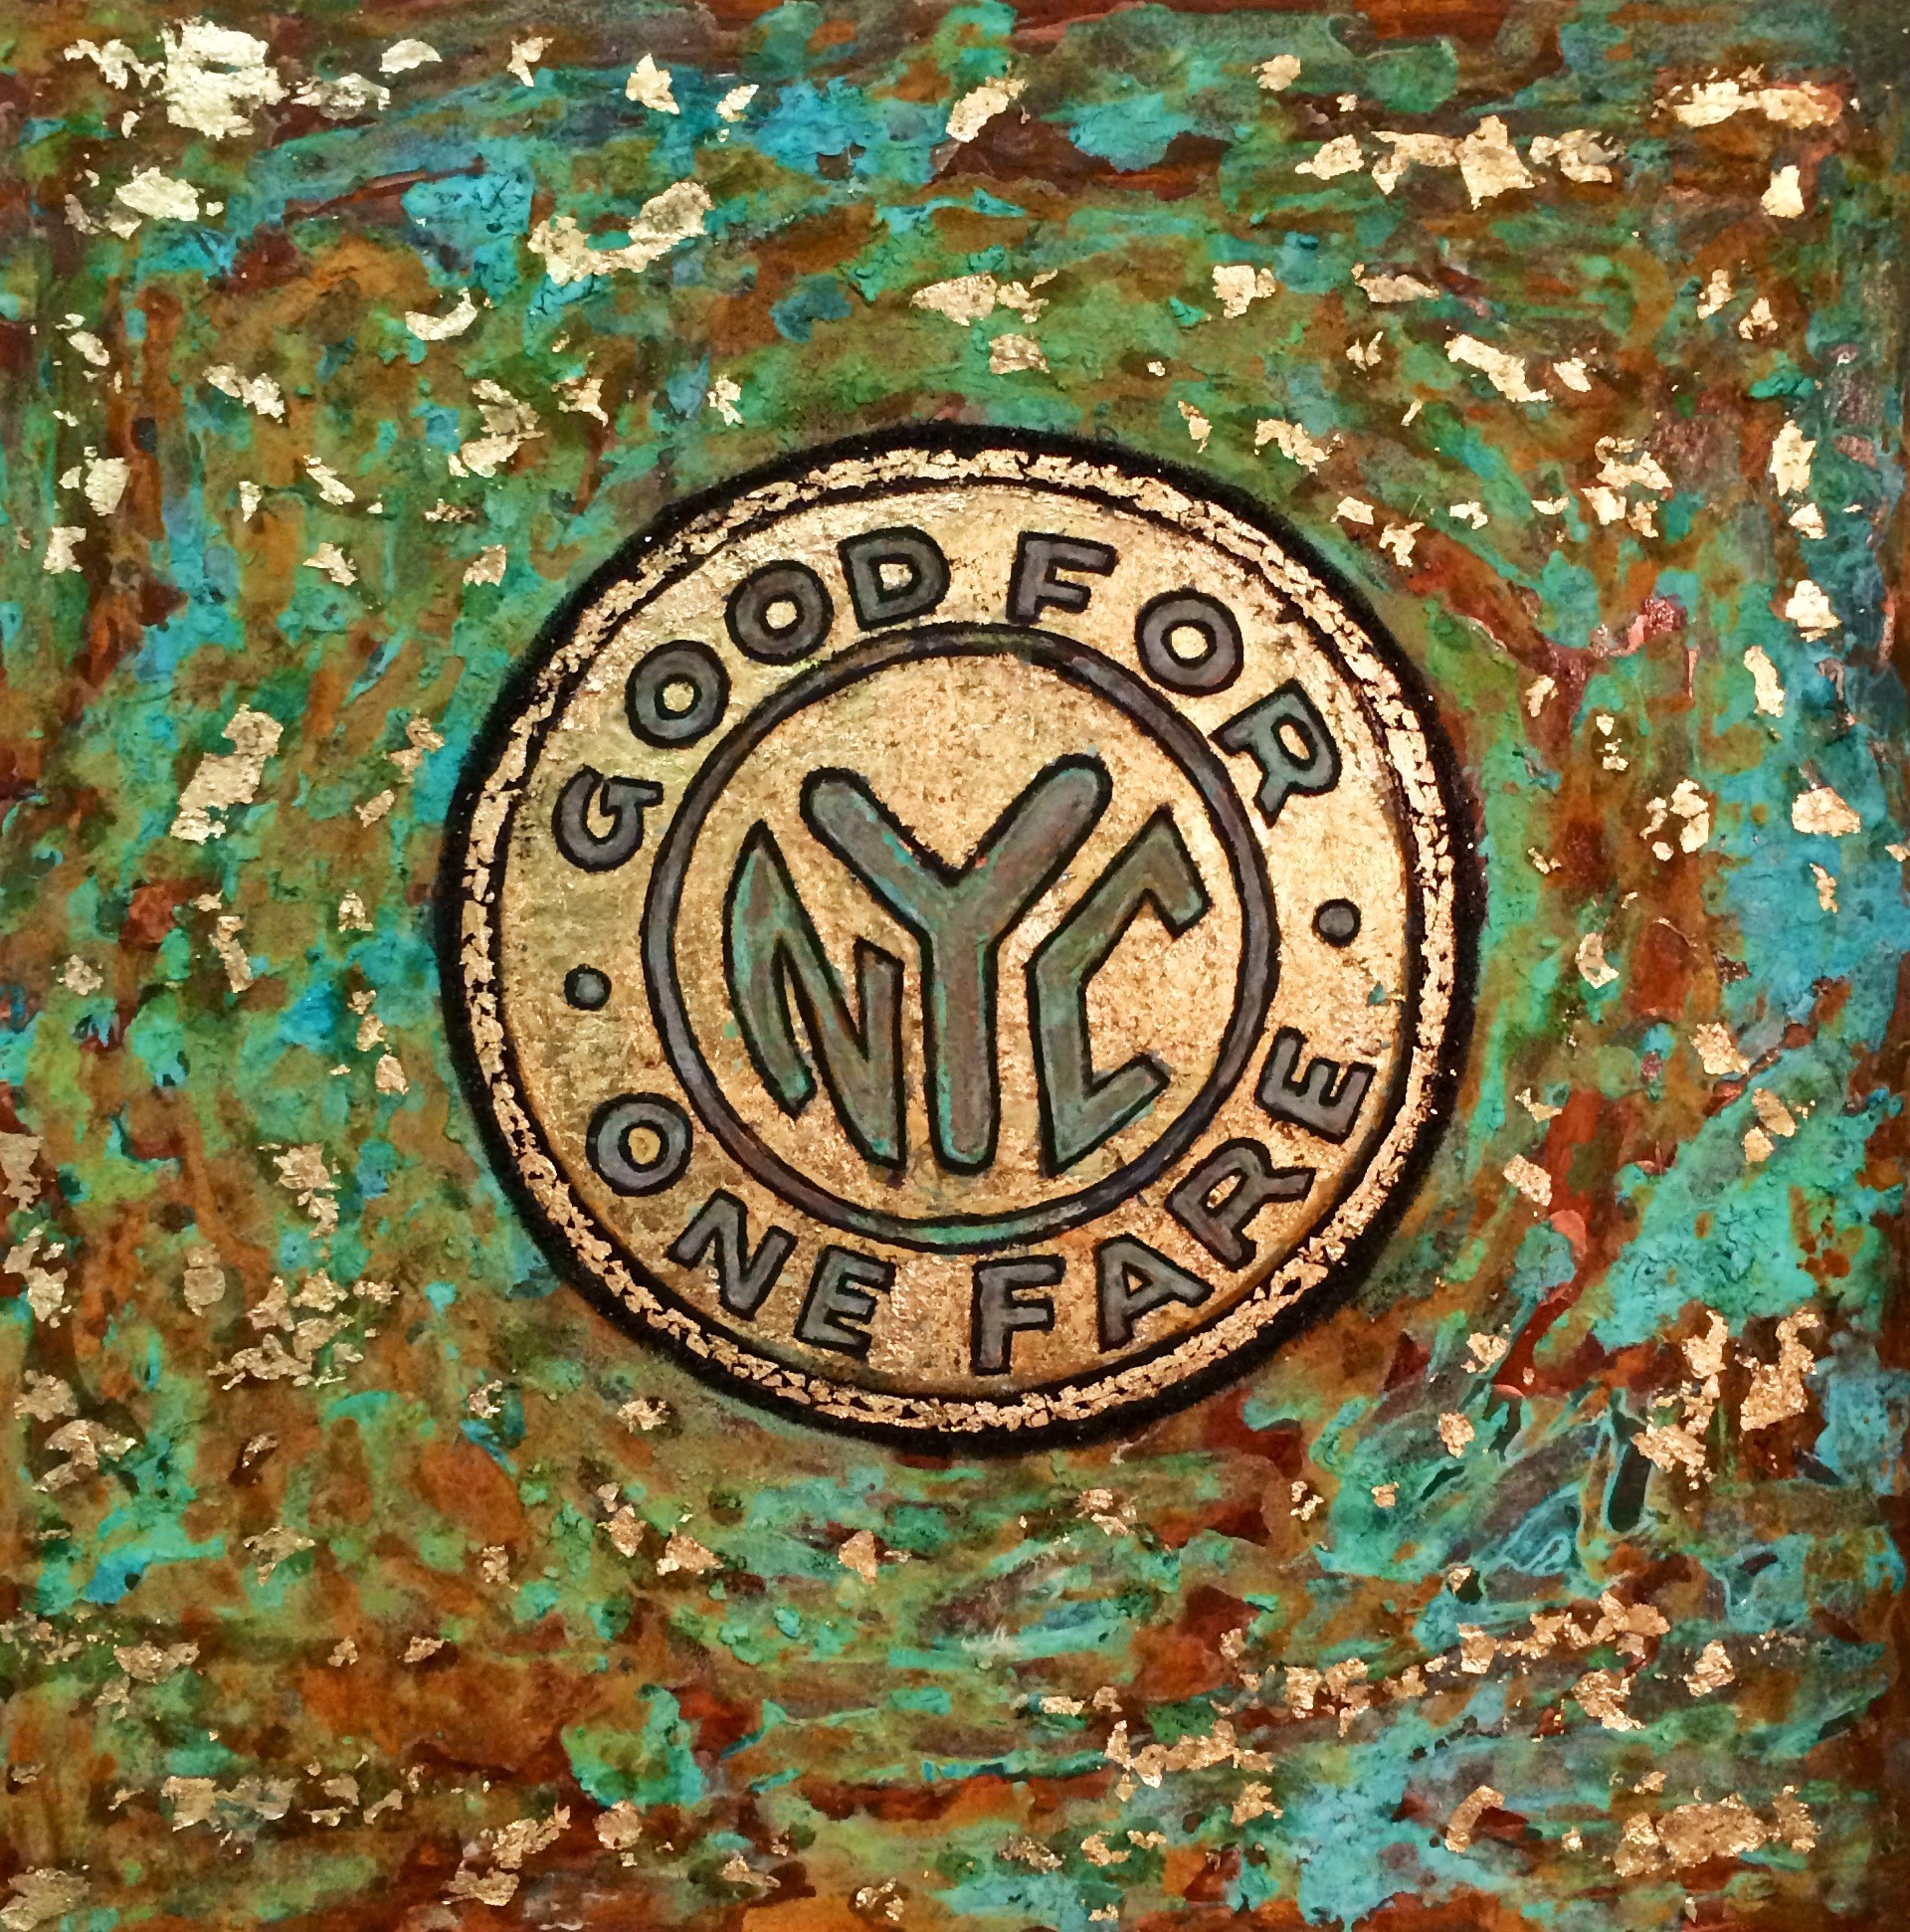 Paul-Zepeda-Subway_Token_Painting.jpg